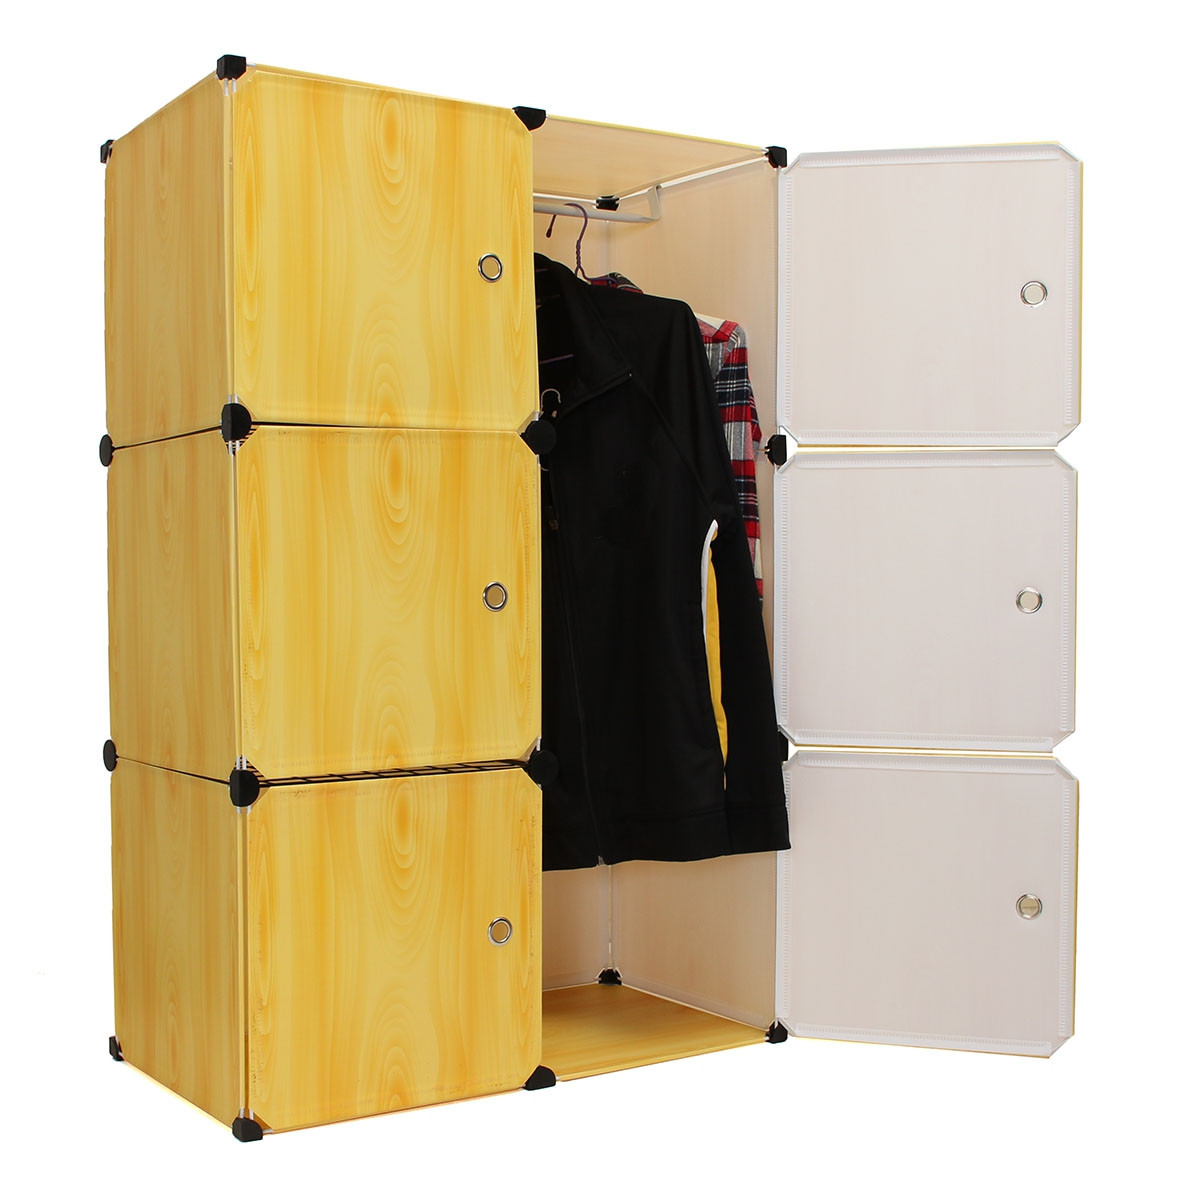 Portable Closet Storage Organizer Cabinet 6 Cube Clothes ...